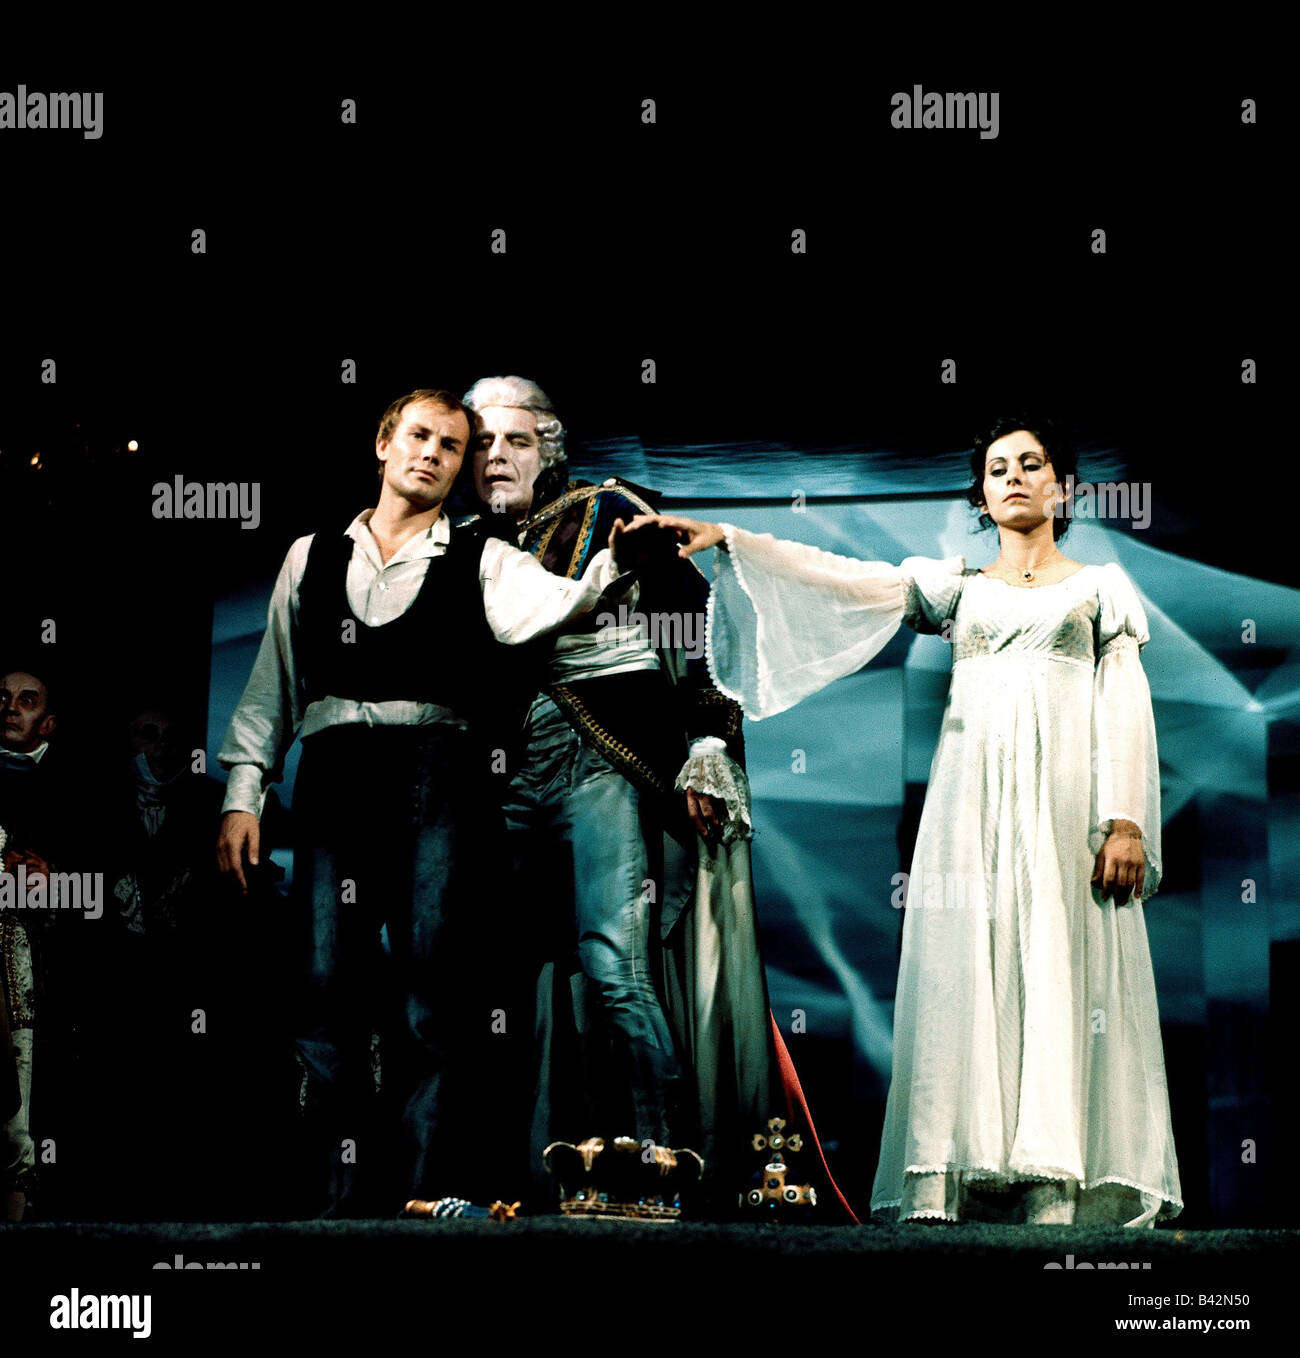 Brandauer, Klaus Maria, * 22.6.1944, Austrian actor, full length, with Romuald Pekny and Marianne Nentwich, in the Stock Photo